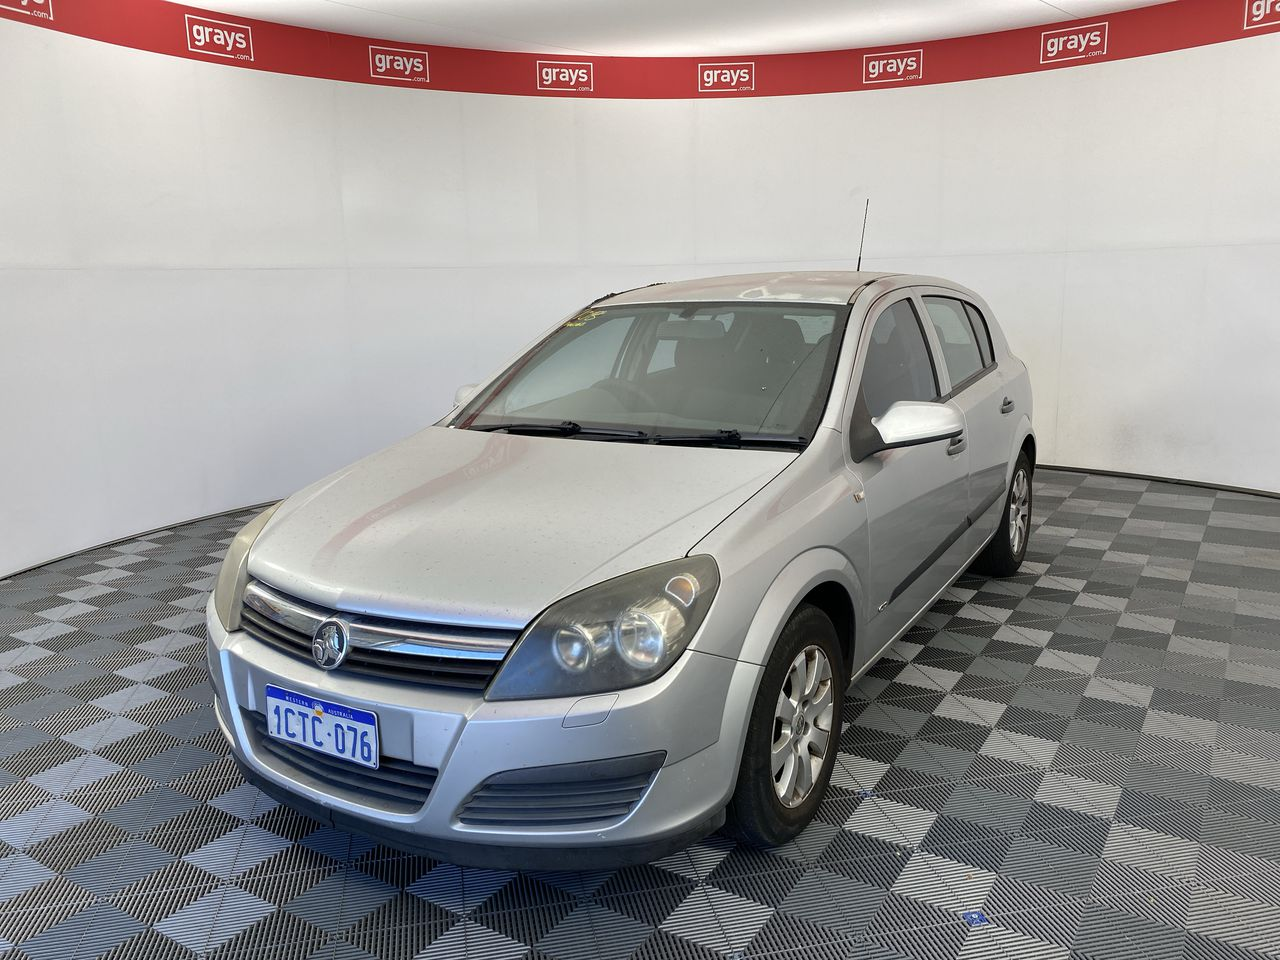 2006 Holden Astra CD AH Manual Hatchback